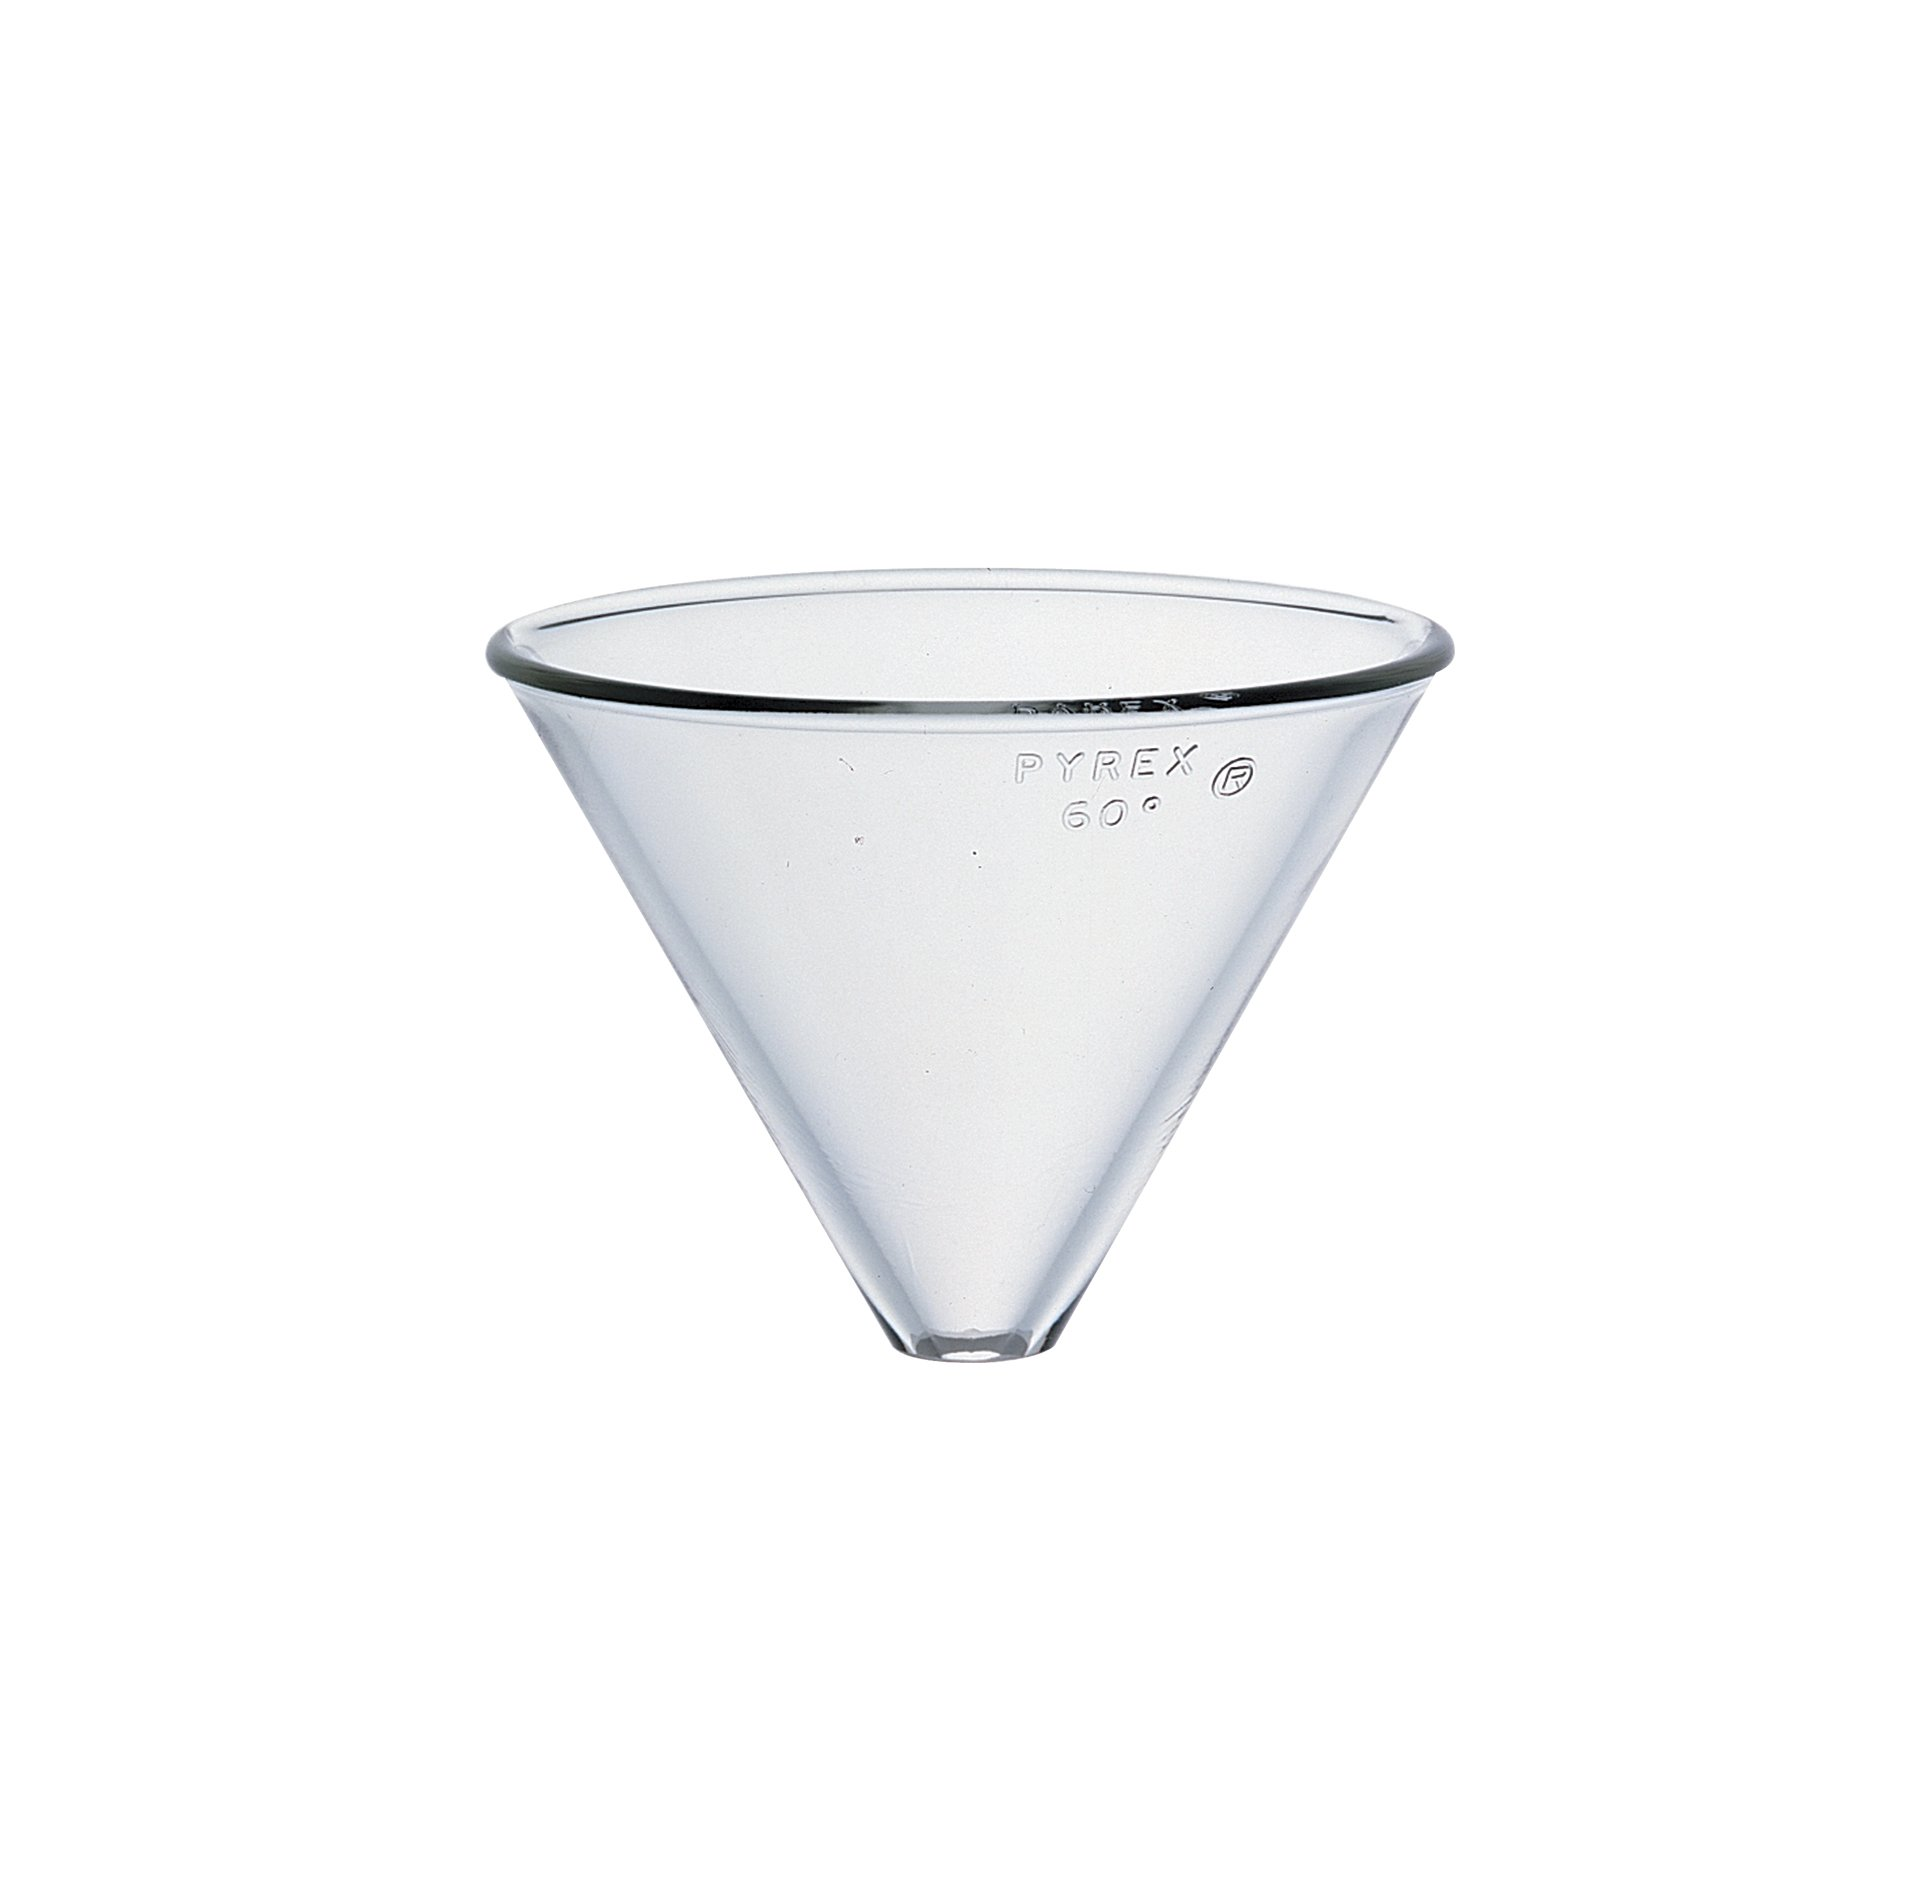 Corning Pyrex Borosilicate Glass Plain Stemless Funnel, 100mm Top I.D by Pyrex